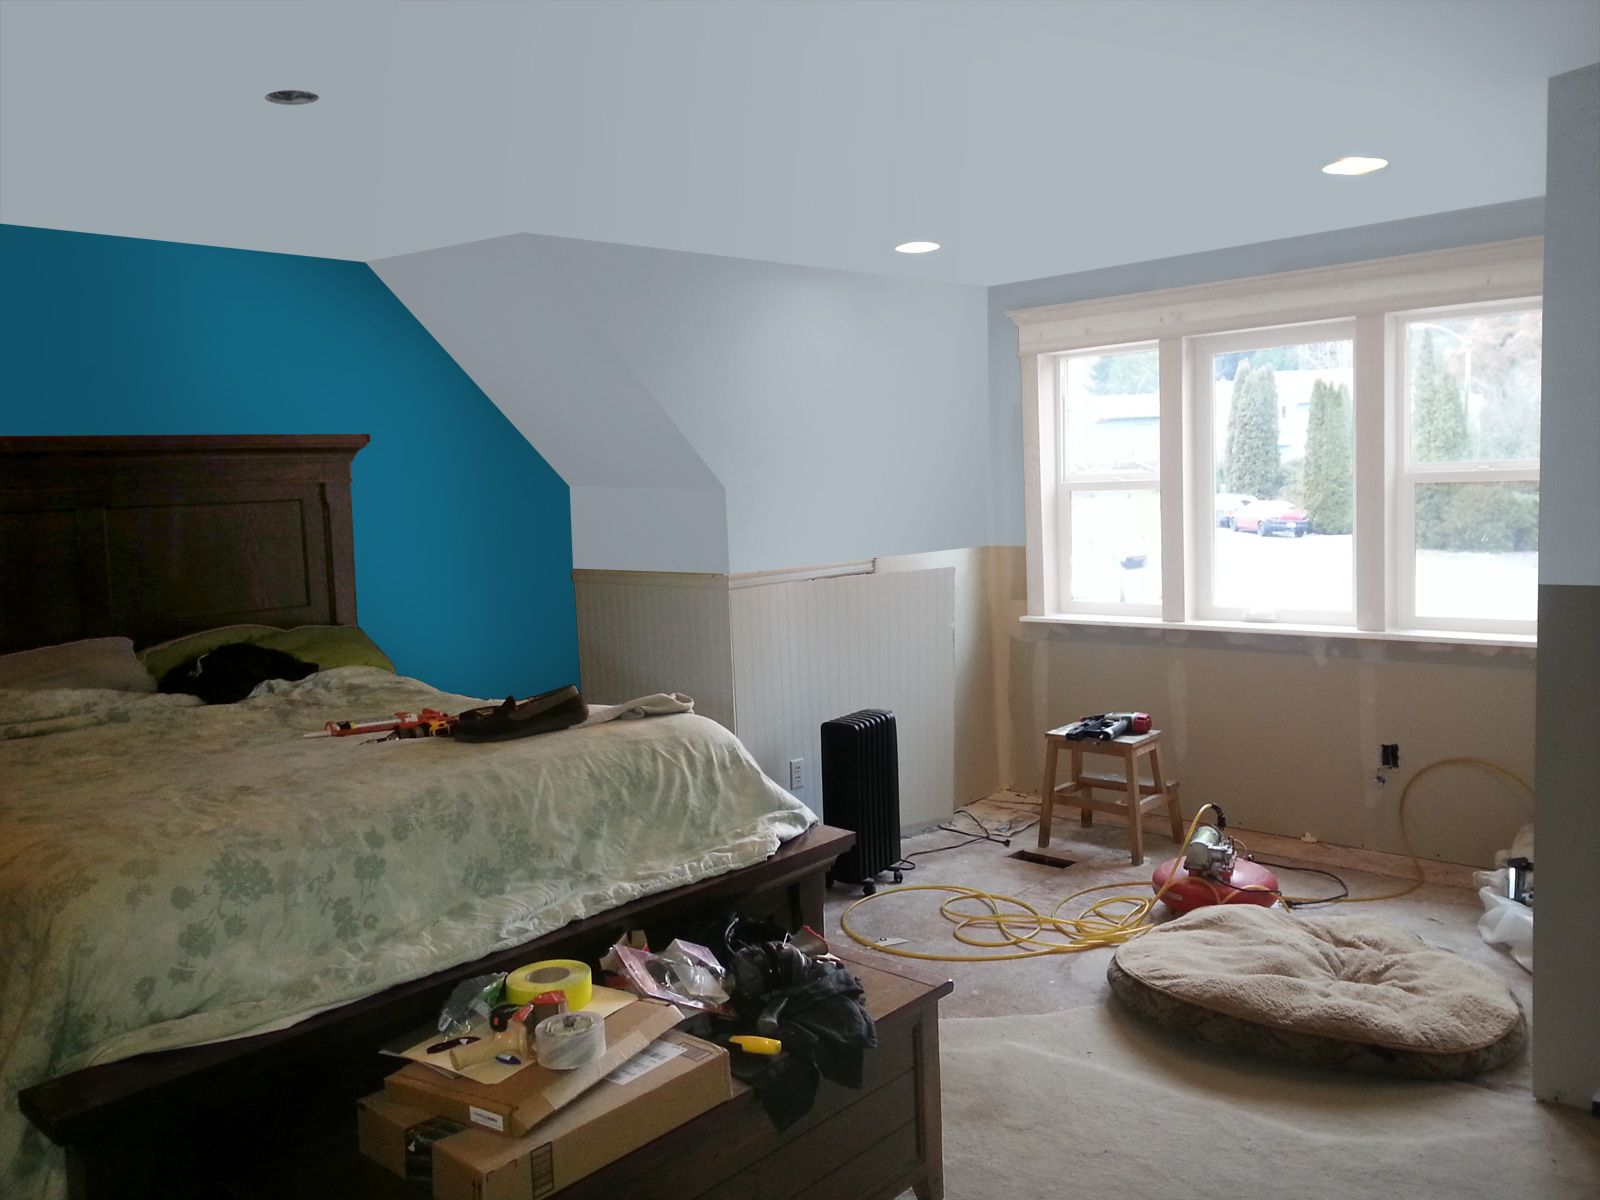 Photoshop Trial Of Master Bedroom With Valspar Colors Pacific Pleasure Accent Wall And Shark